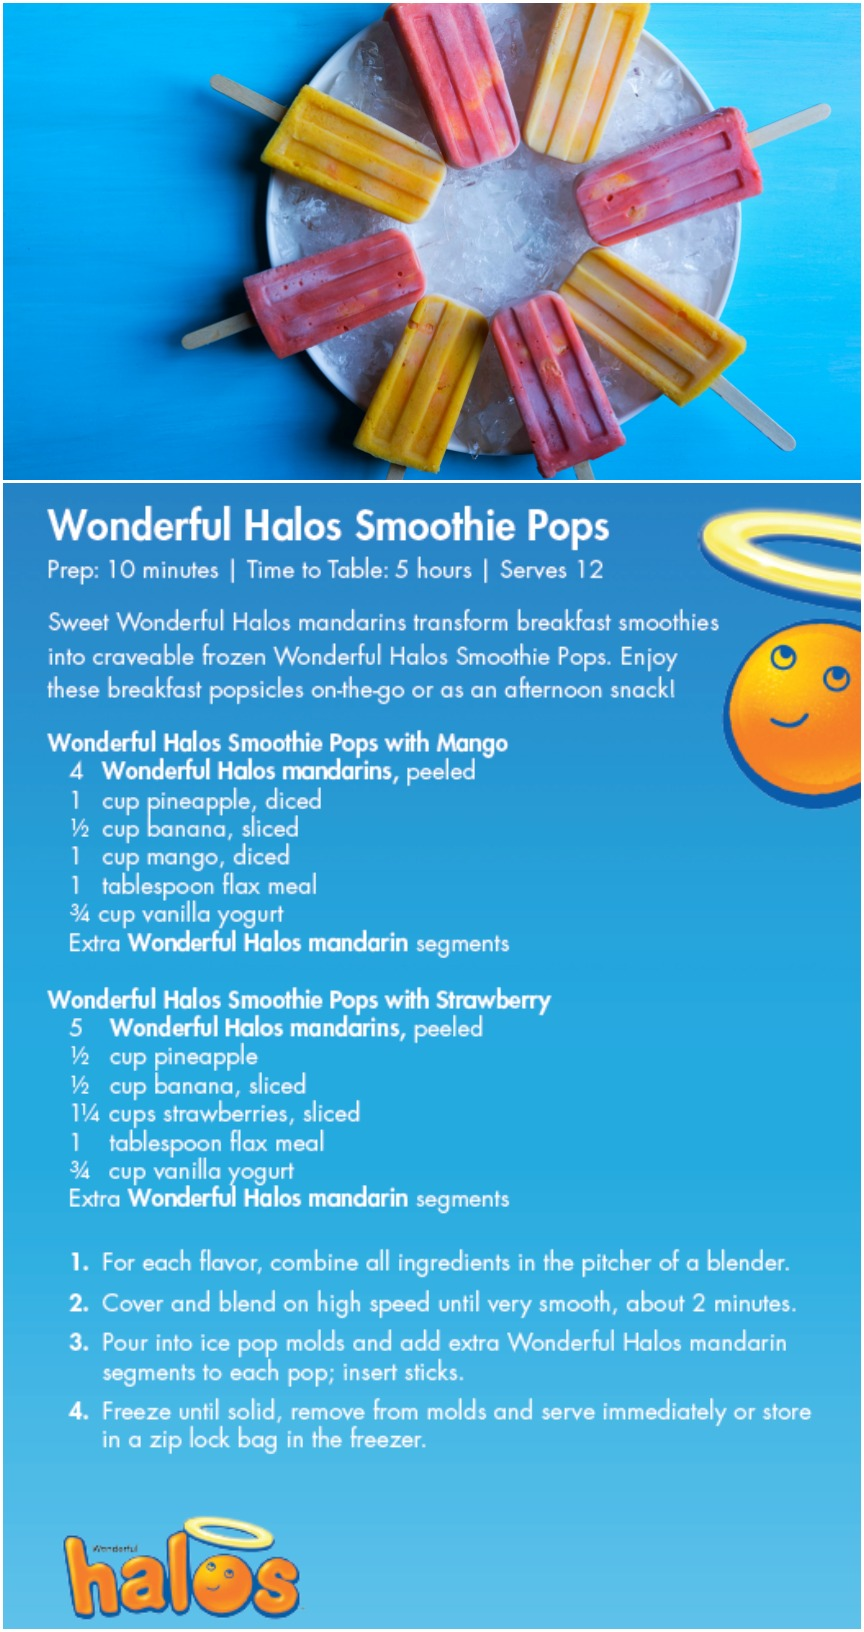 Wonderful Halos Smoothie Pops